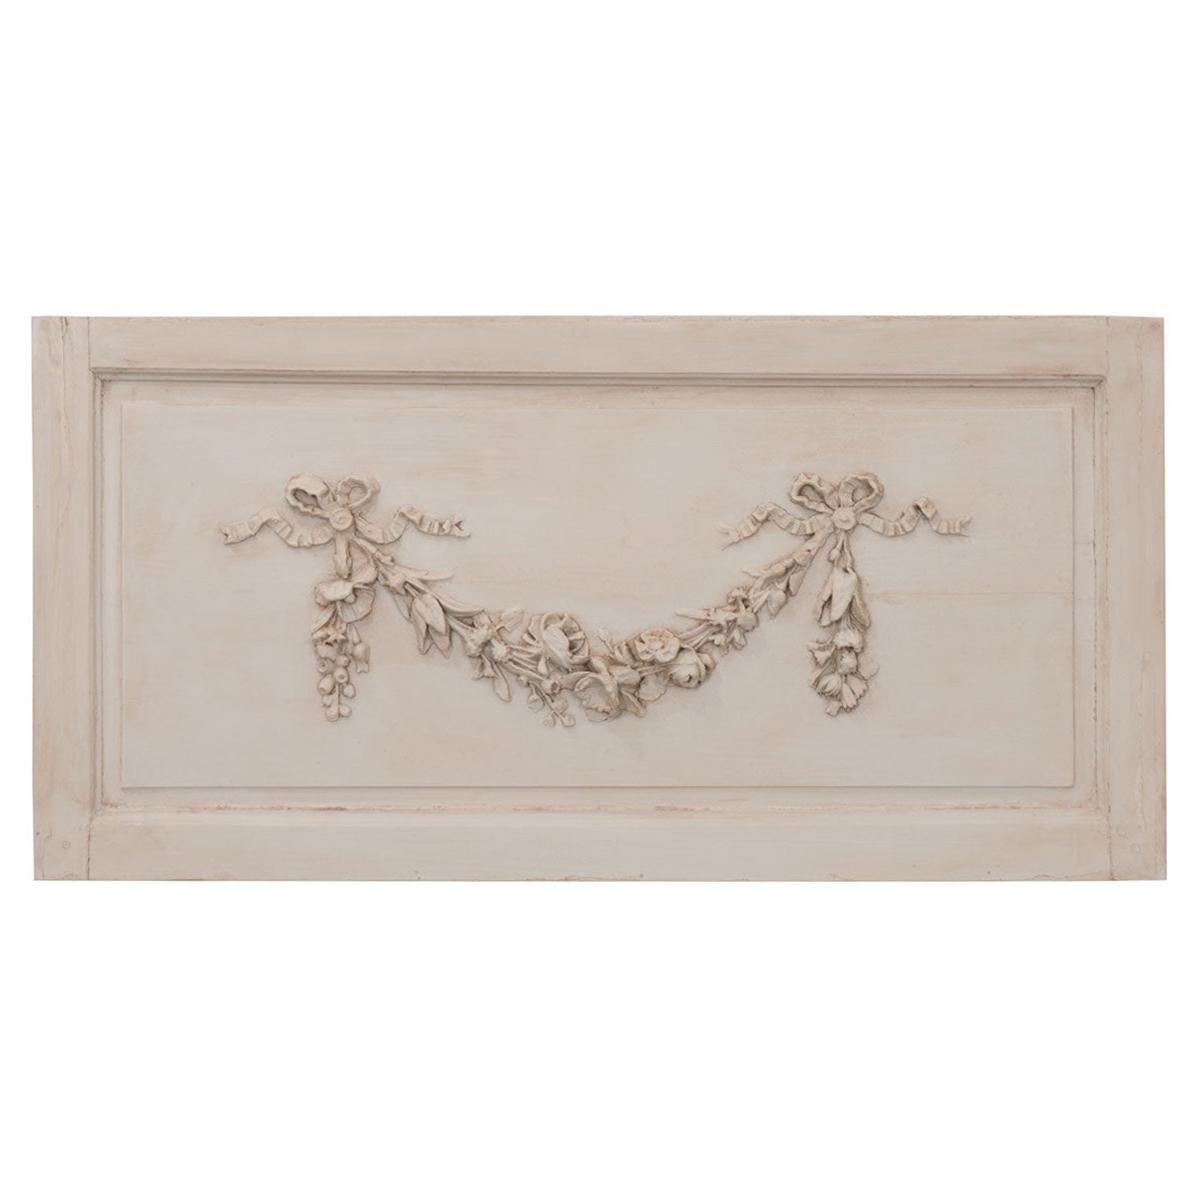 French 19th Century Painted Boiserie Panel